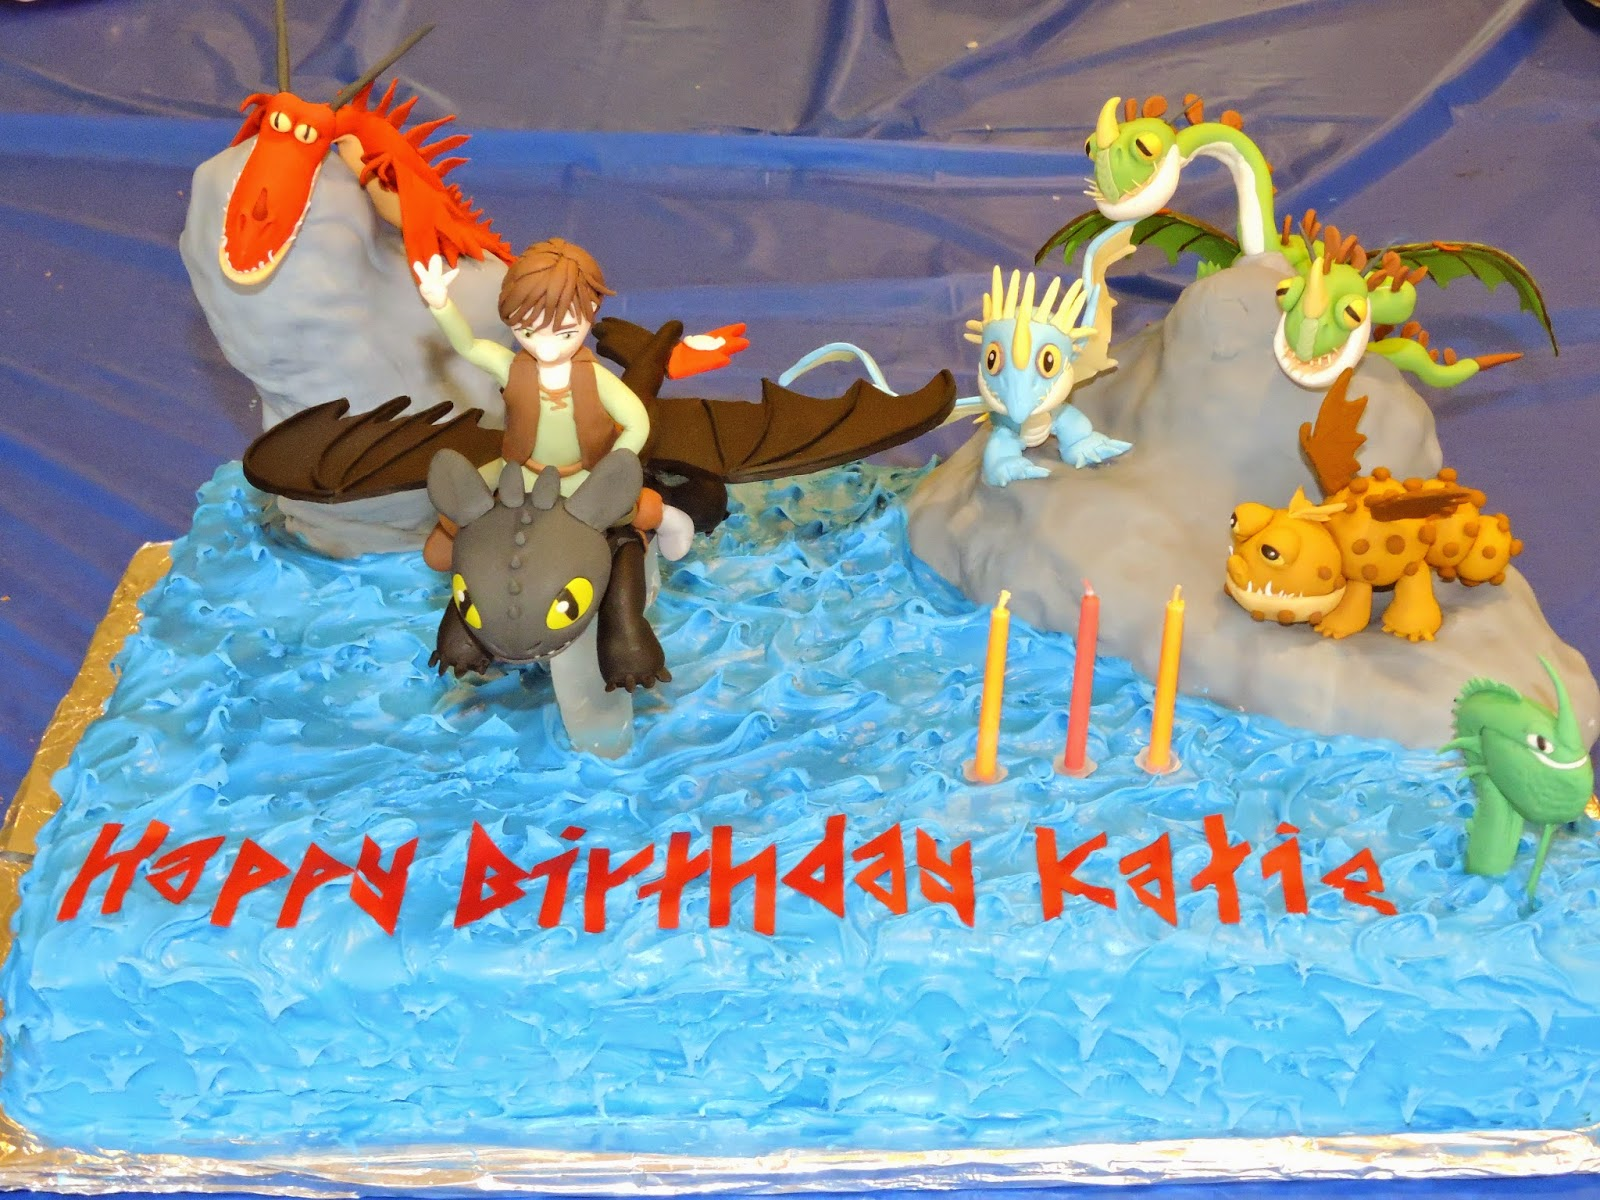 I like to make things how to train your dragon cake how to train your dragon cake ccuart Choice Image